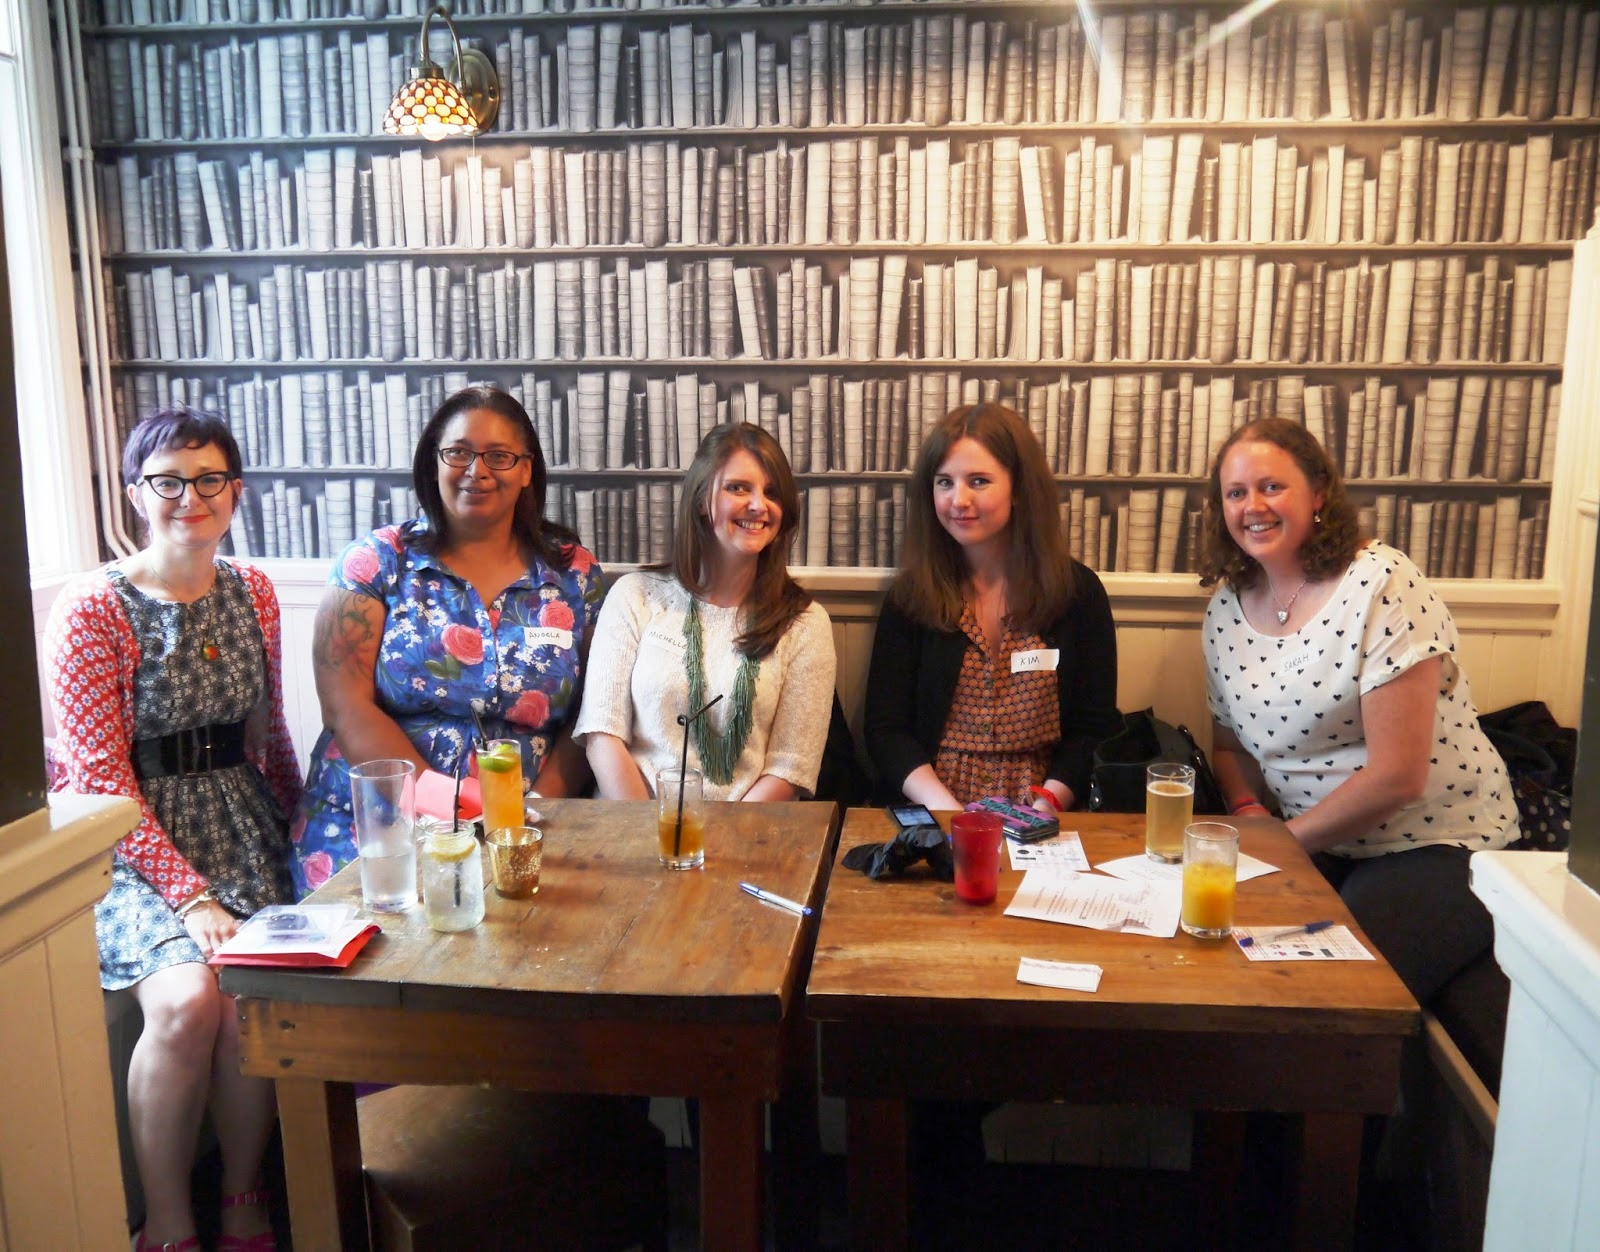 Lovely ladies at South West Blog Social